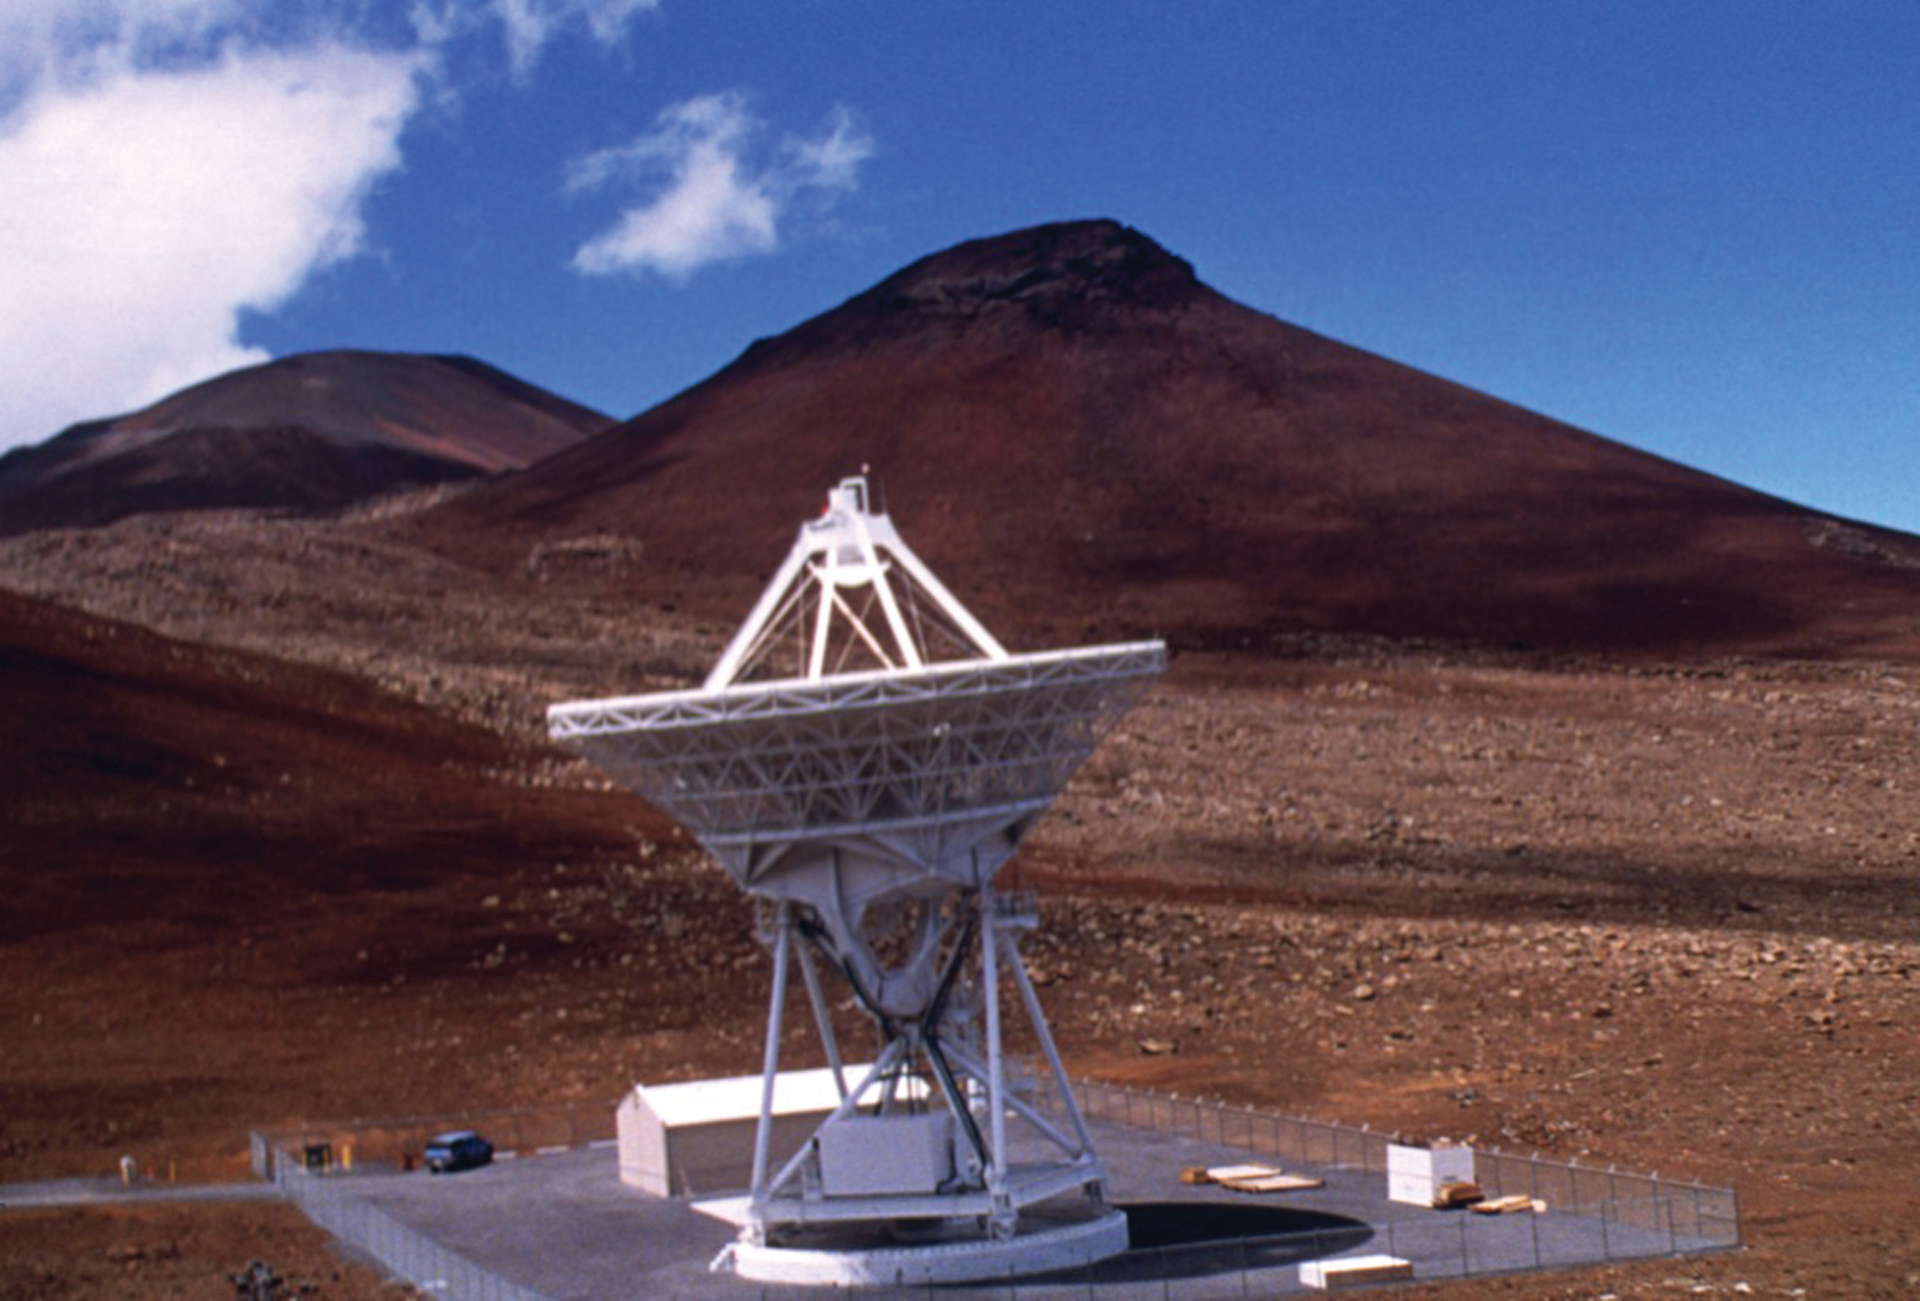 VLBA Antenna on top of Mauna Kea